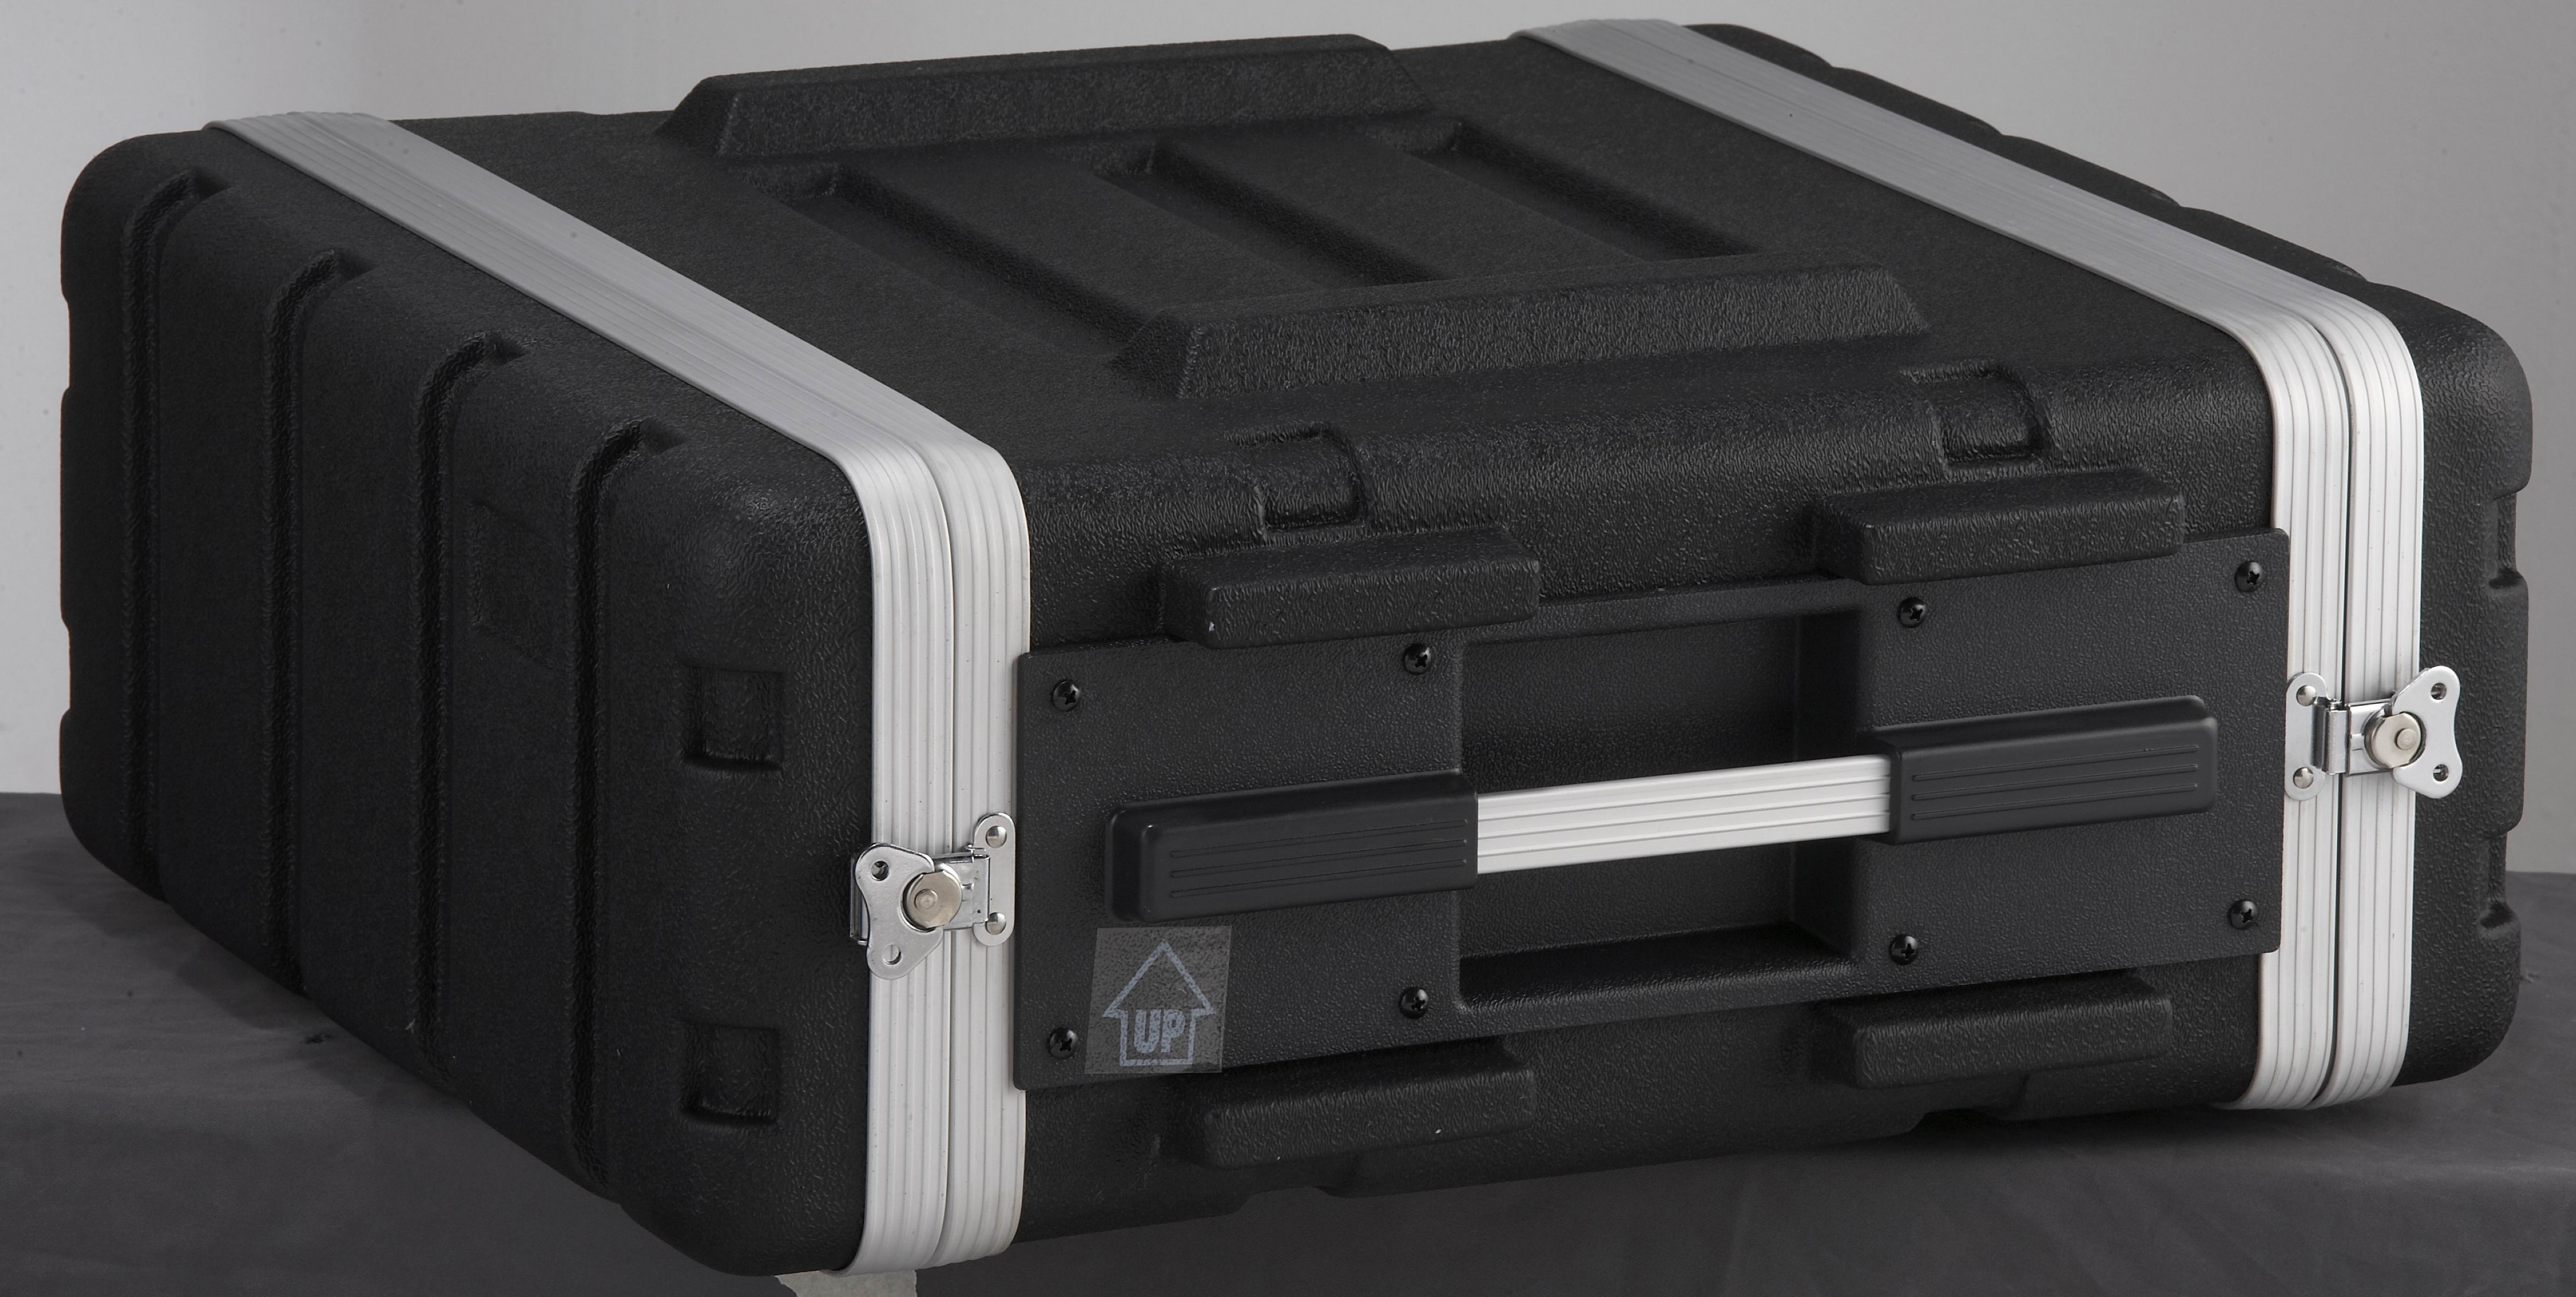 ABS Standard 4U Rack Case